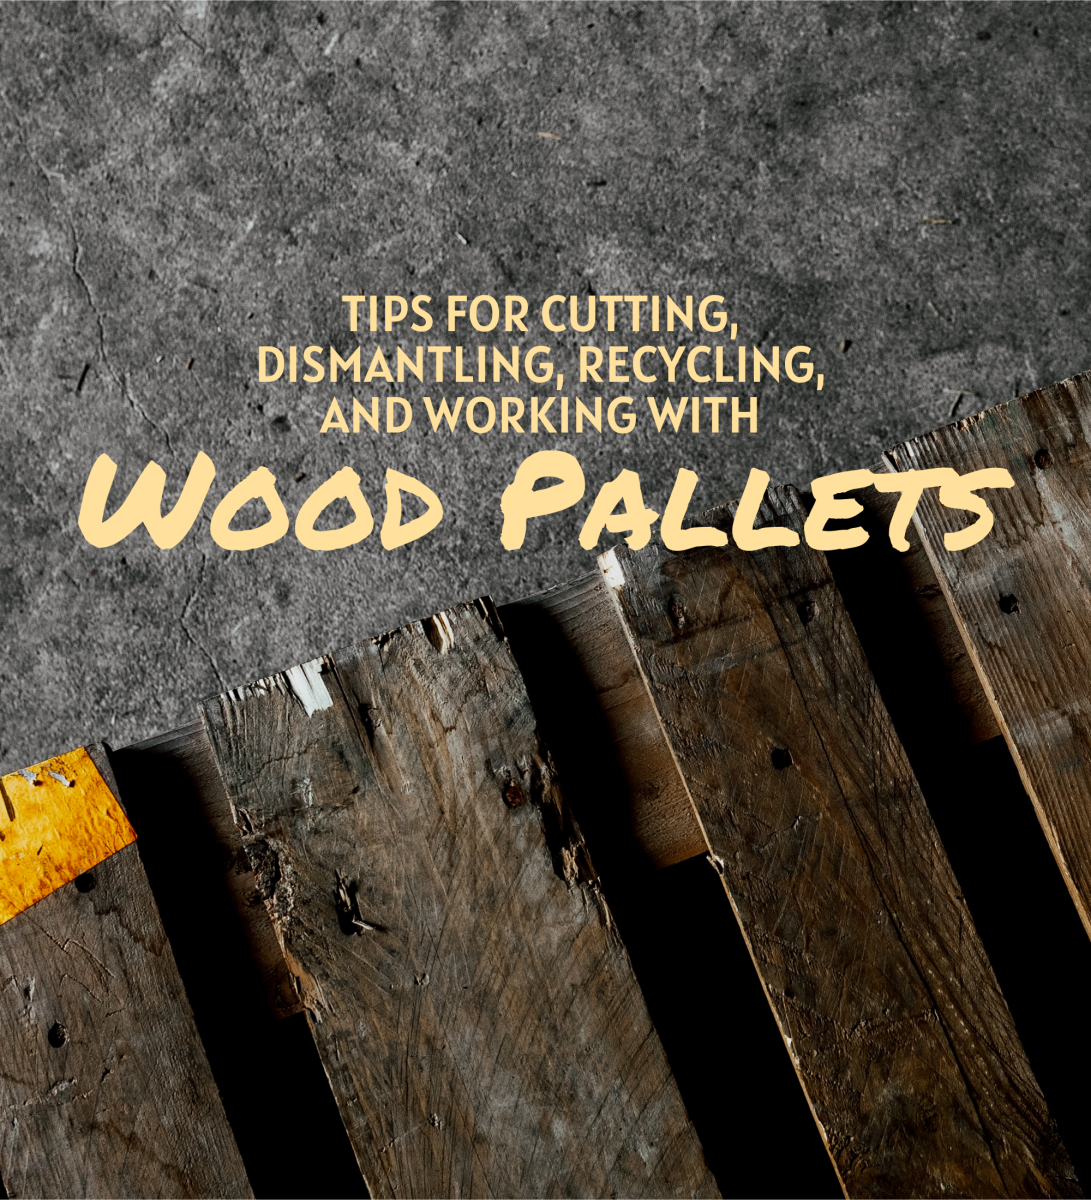 Tips for Cutting, Removing, and Working With Wood Pallets